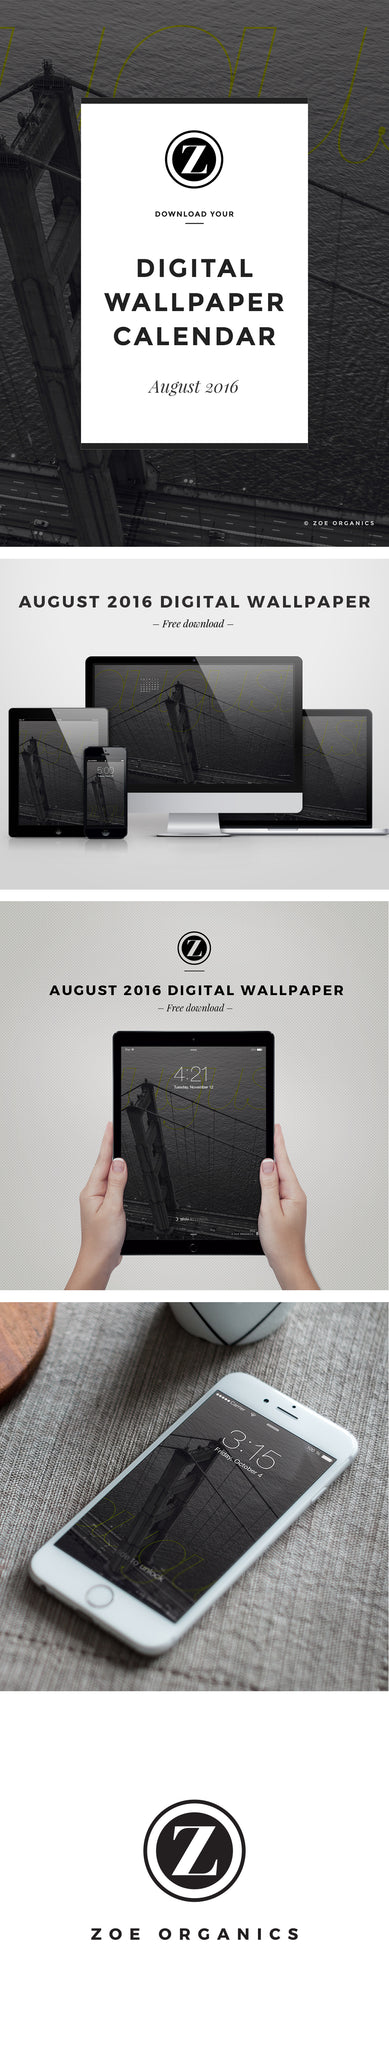 Zoe Organics Digital Wallpaper  |  Free Download  |  August 2016